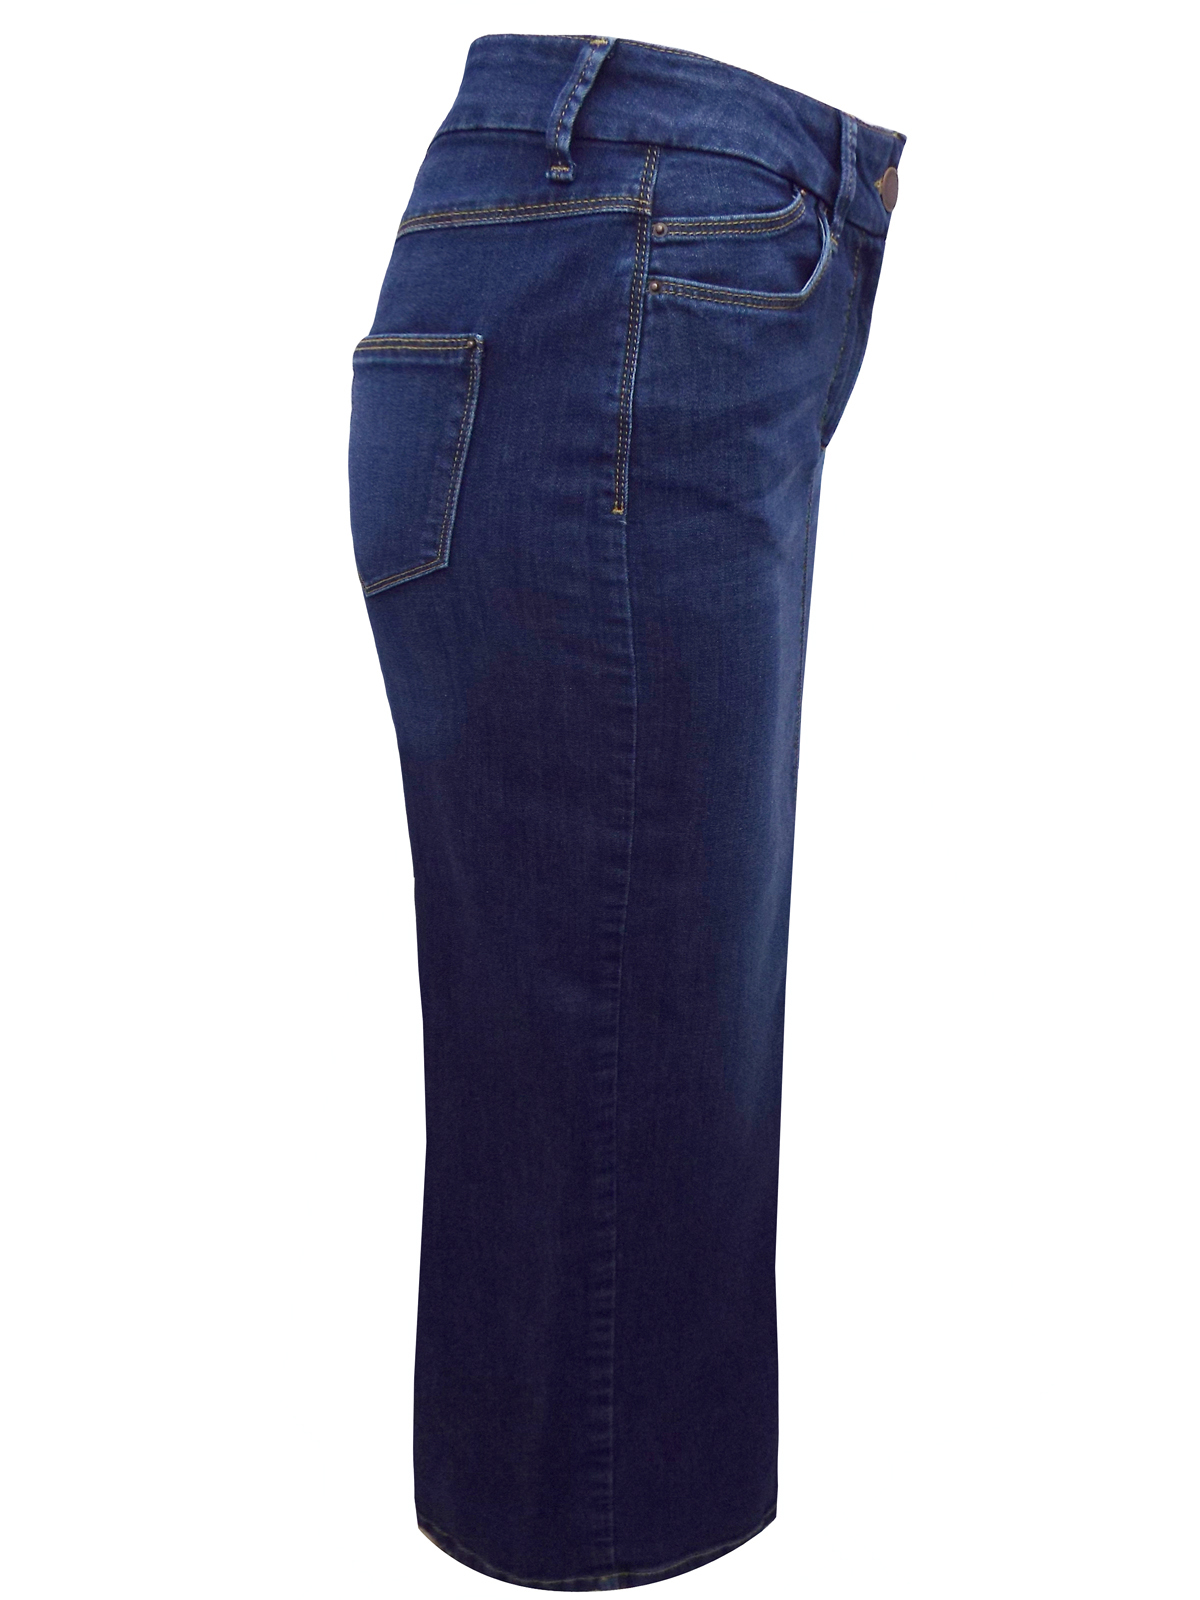 marks and spencer m 5 navy cotton rich denim